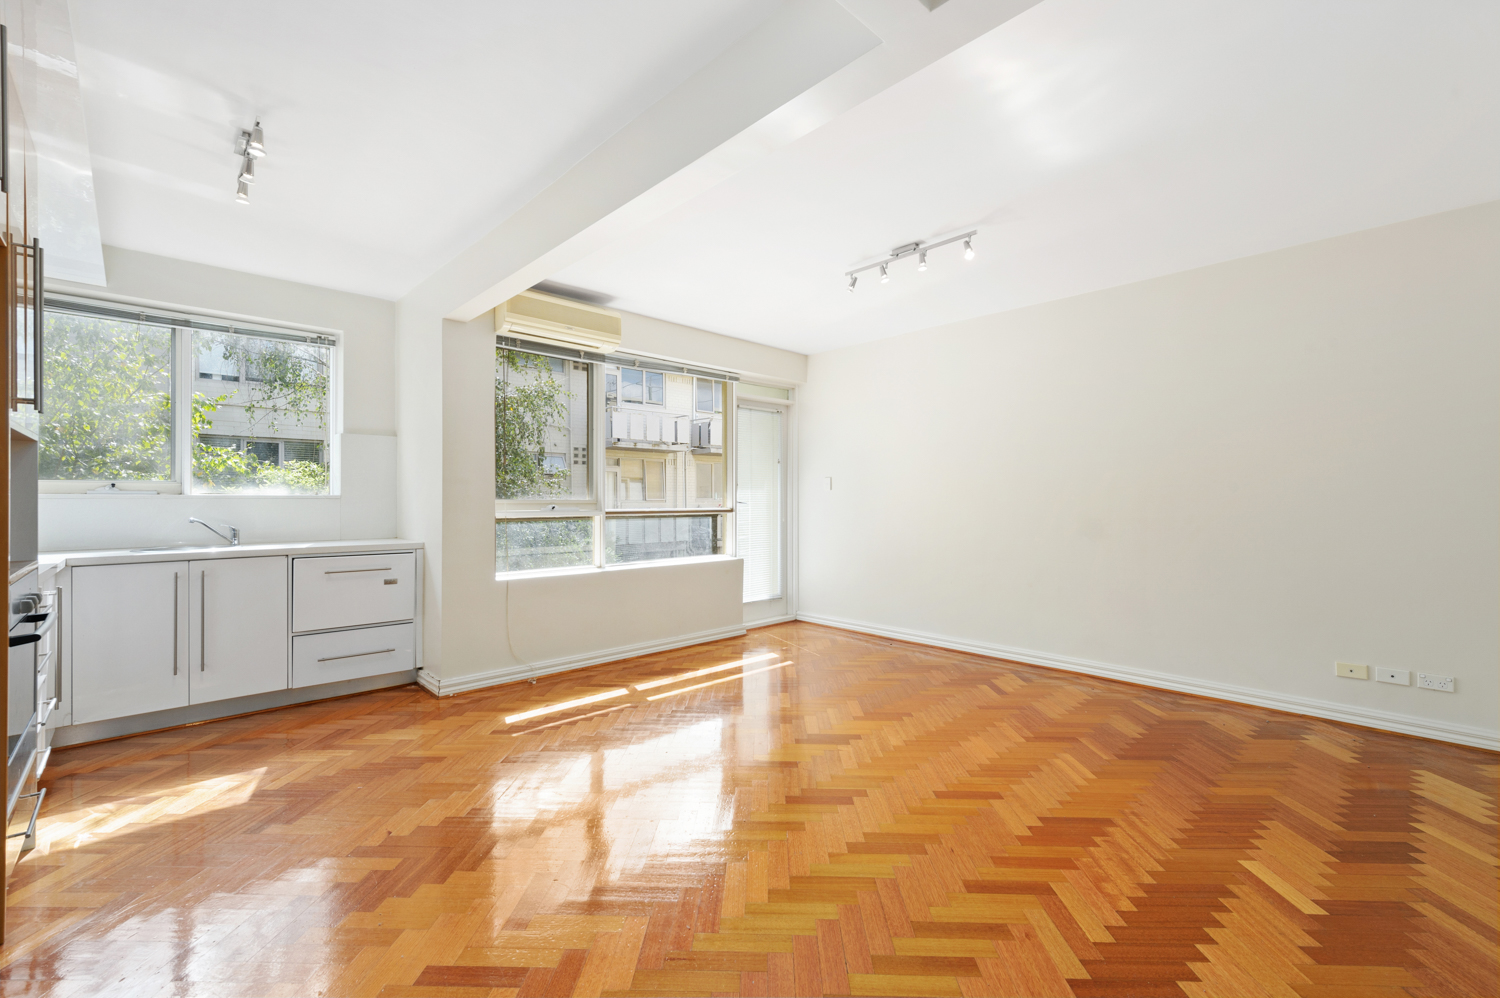 12-11-kooyong-road-armadale-student-accommodation-Melbourne-Living-Area-Unilodgers